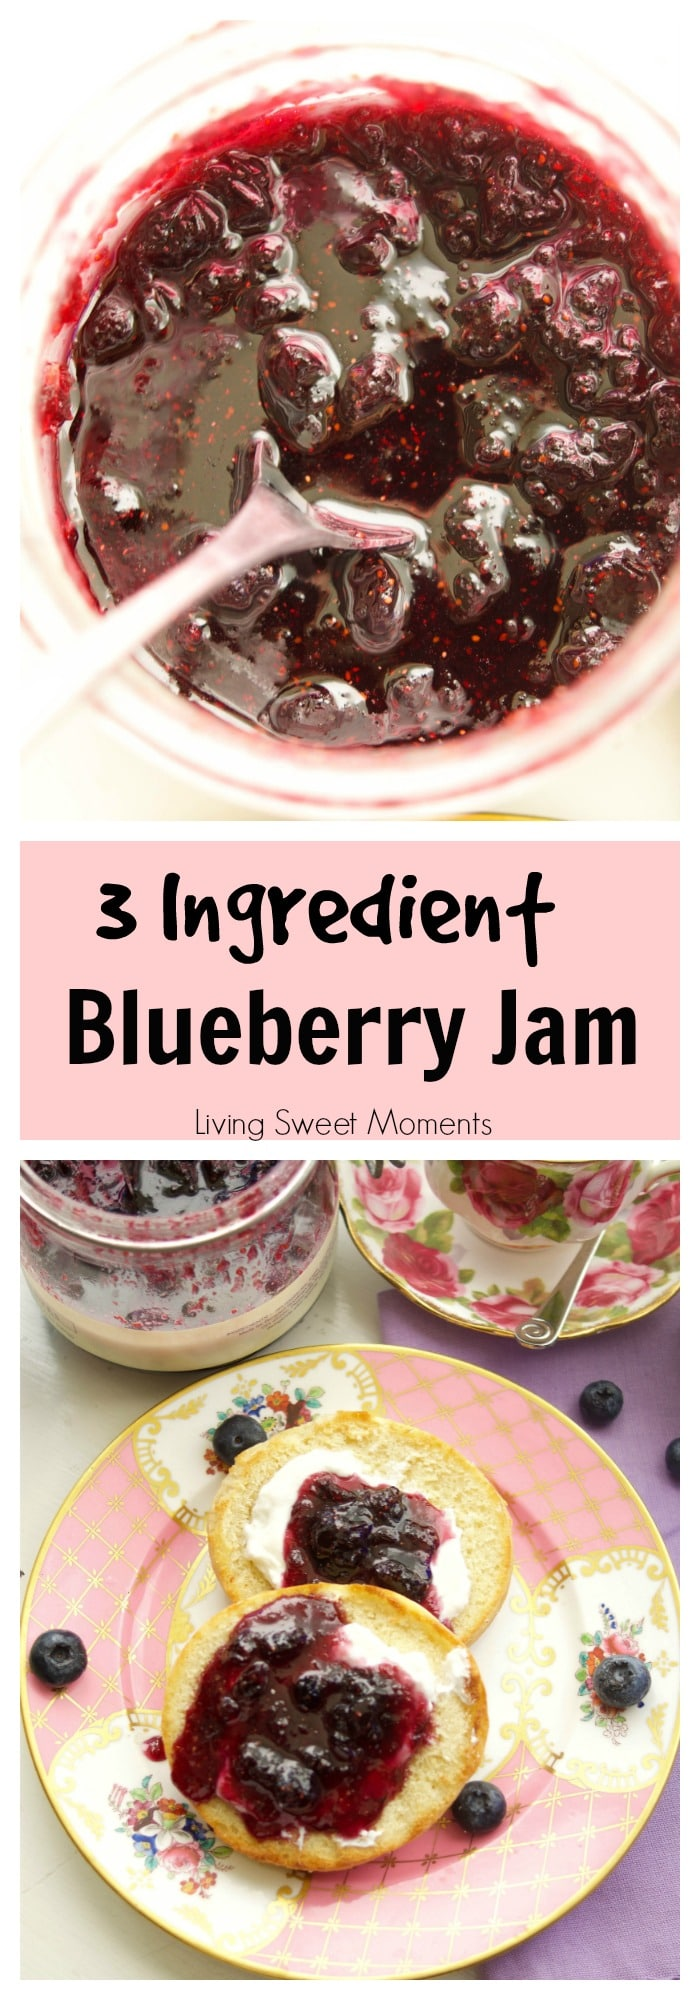 This delicious Blueberry Jam Recipe requires only 3 ingredients and is super easy to make and can. Use it as a spread or as a filling for pies or cookies.